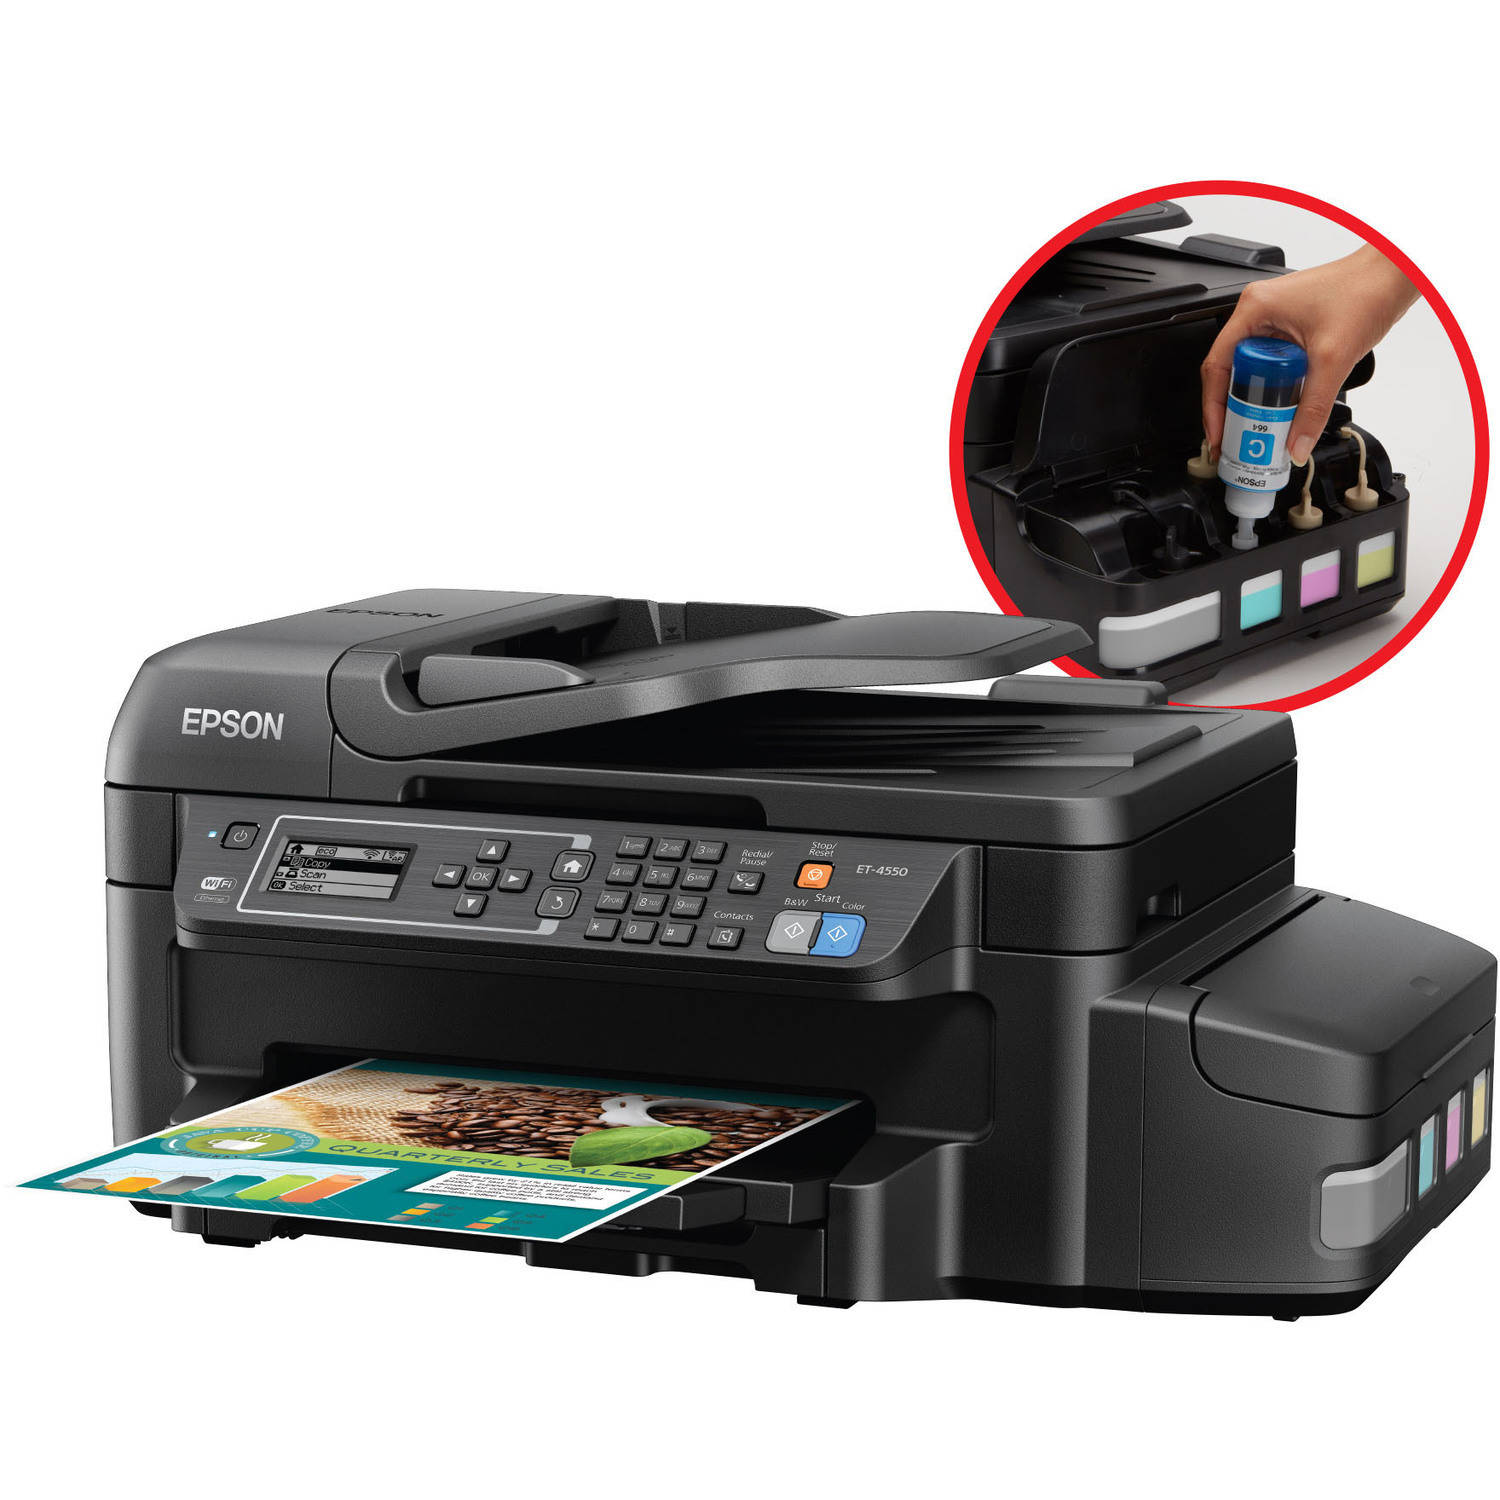 Epson WorkForce ET-4550 EcoTank All-in-One Printer/Copier/Scanner/Fax Machine